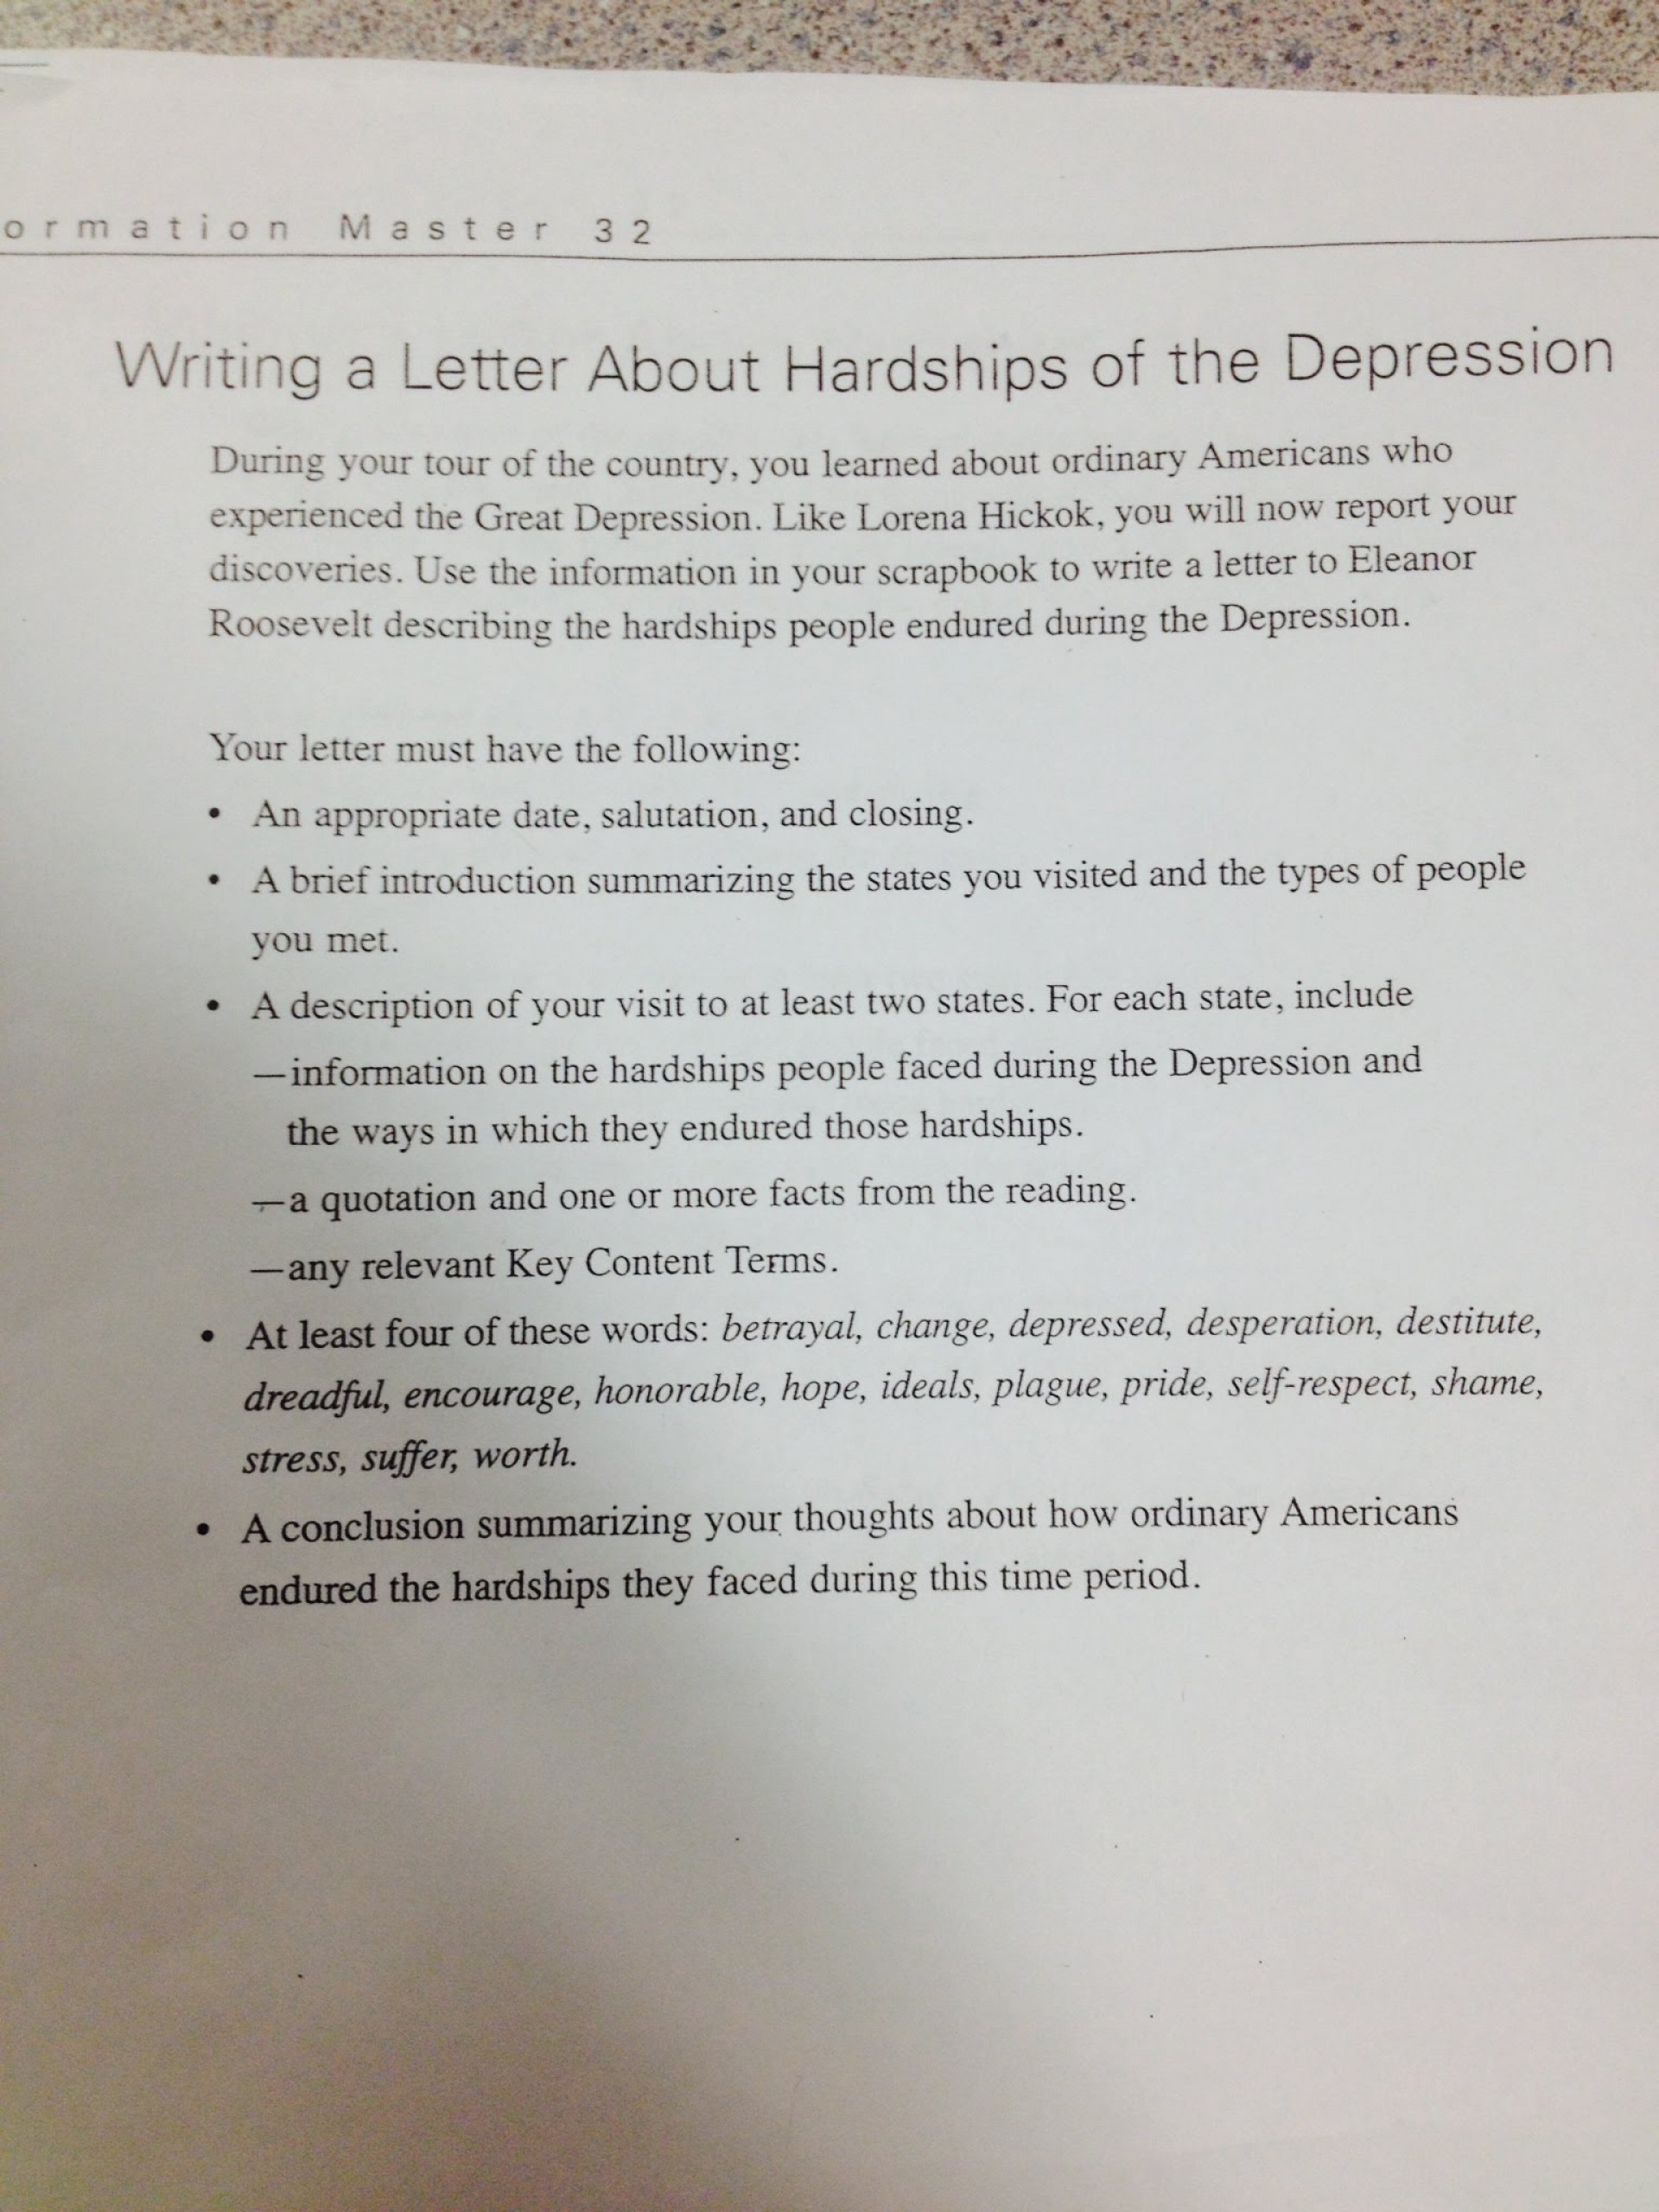 012 Letter Conclusion Of The Great Depression Essay Amazing 1920